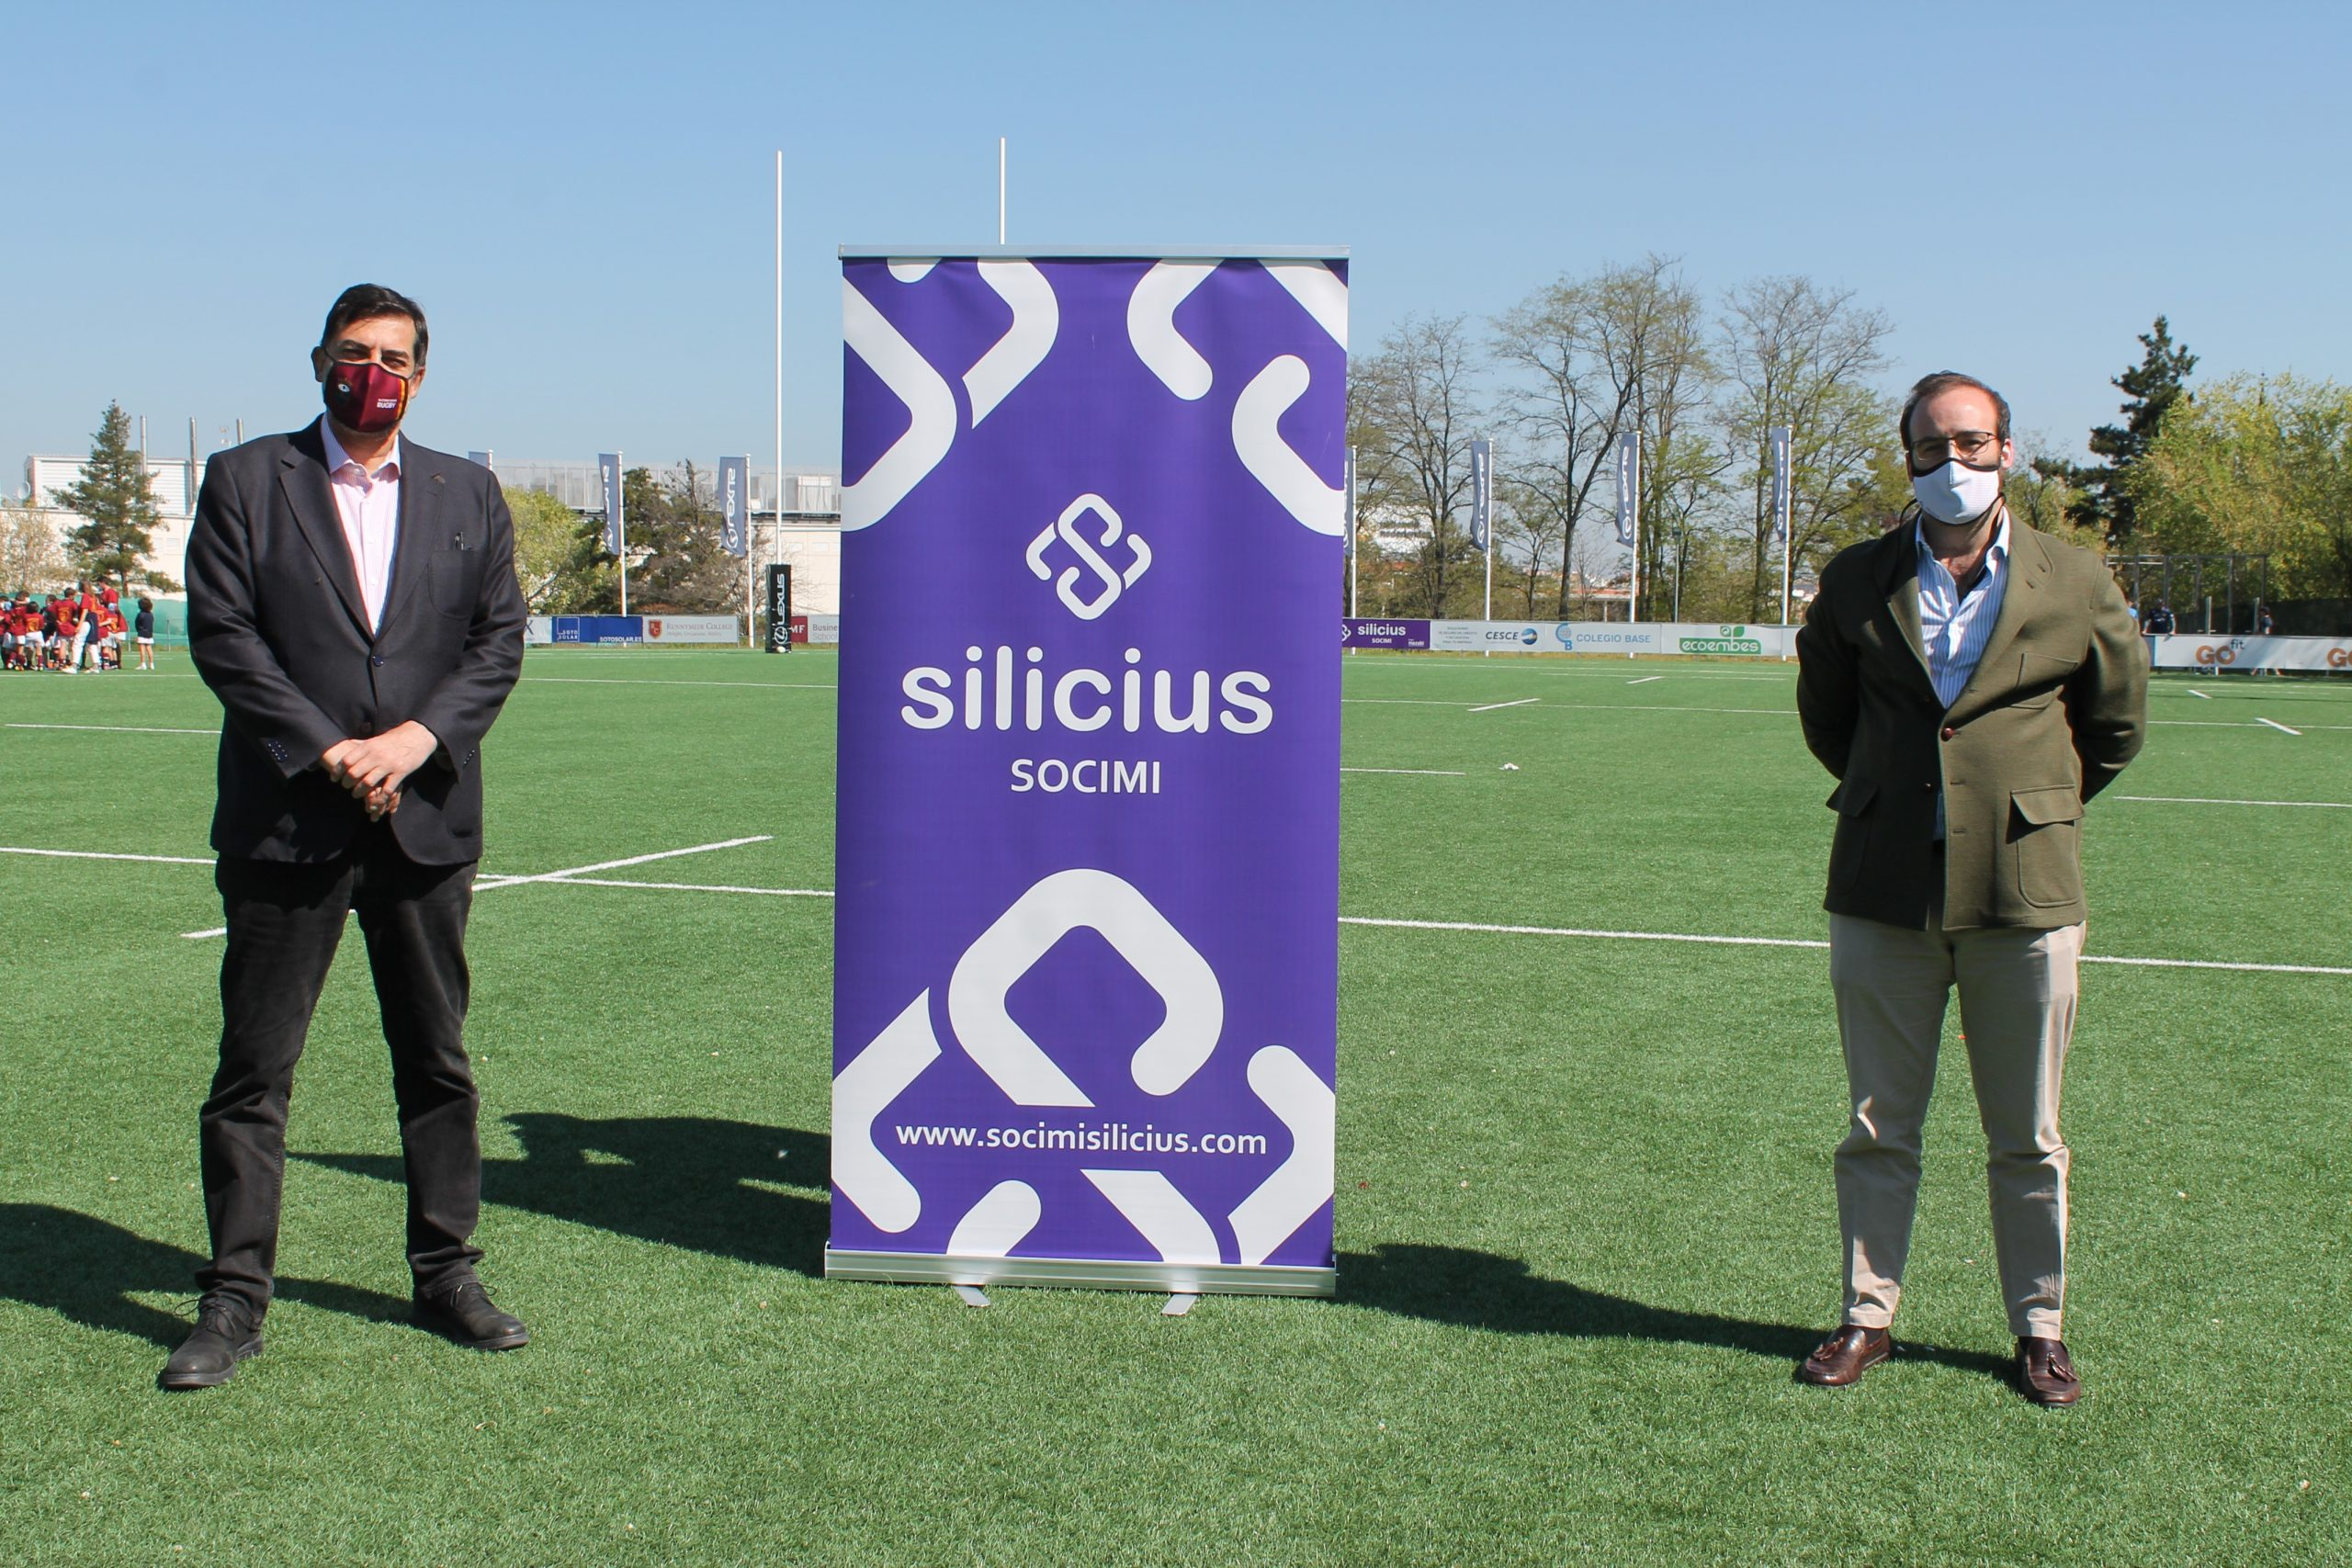 SILICIUS sponsors four rugby clubs and strengthens its commitment to this sport